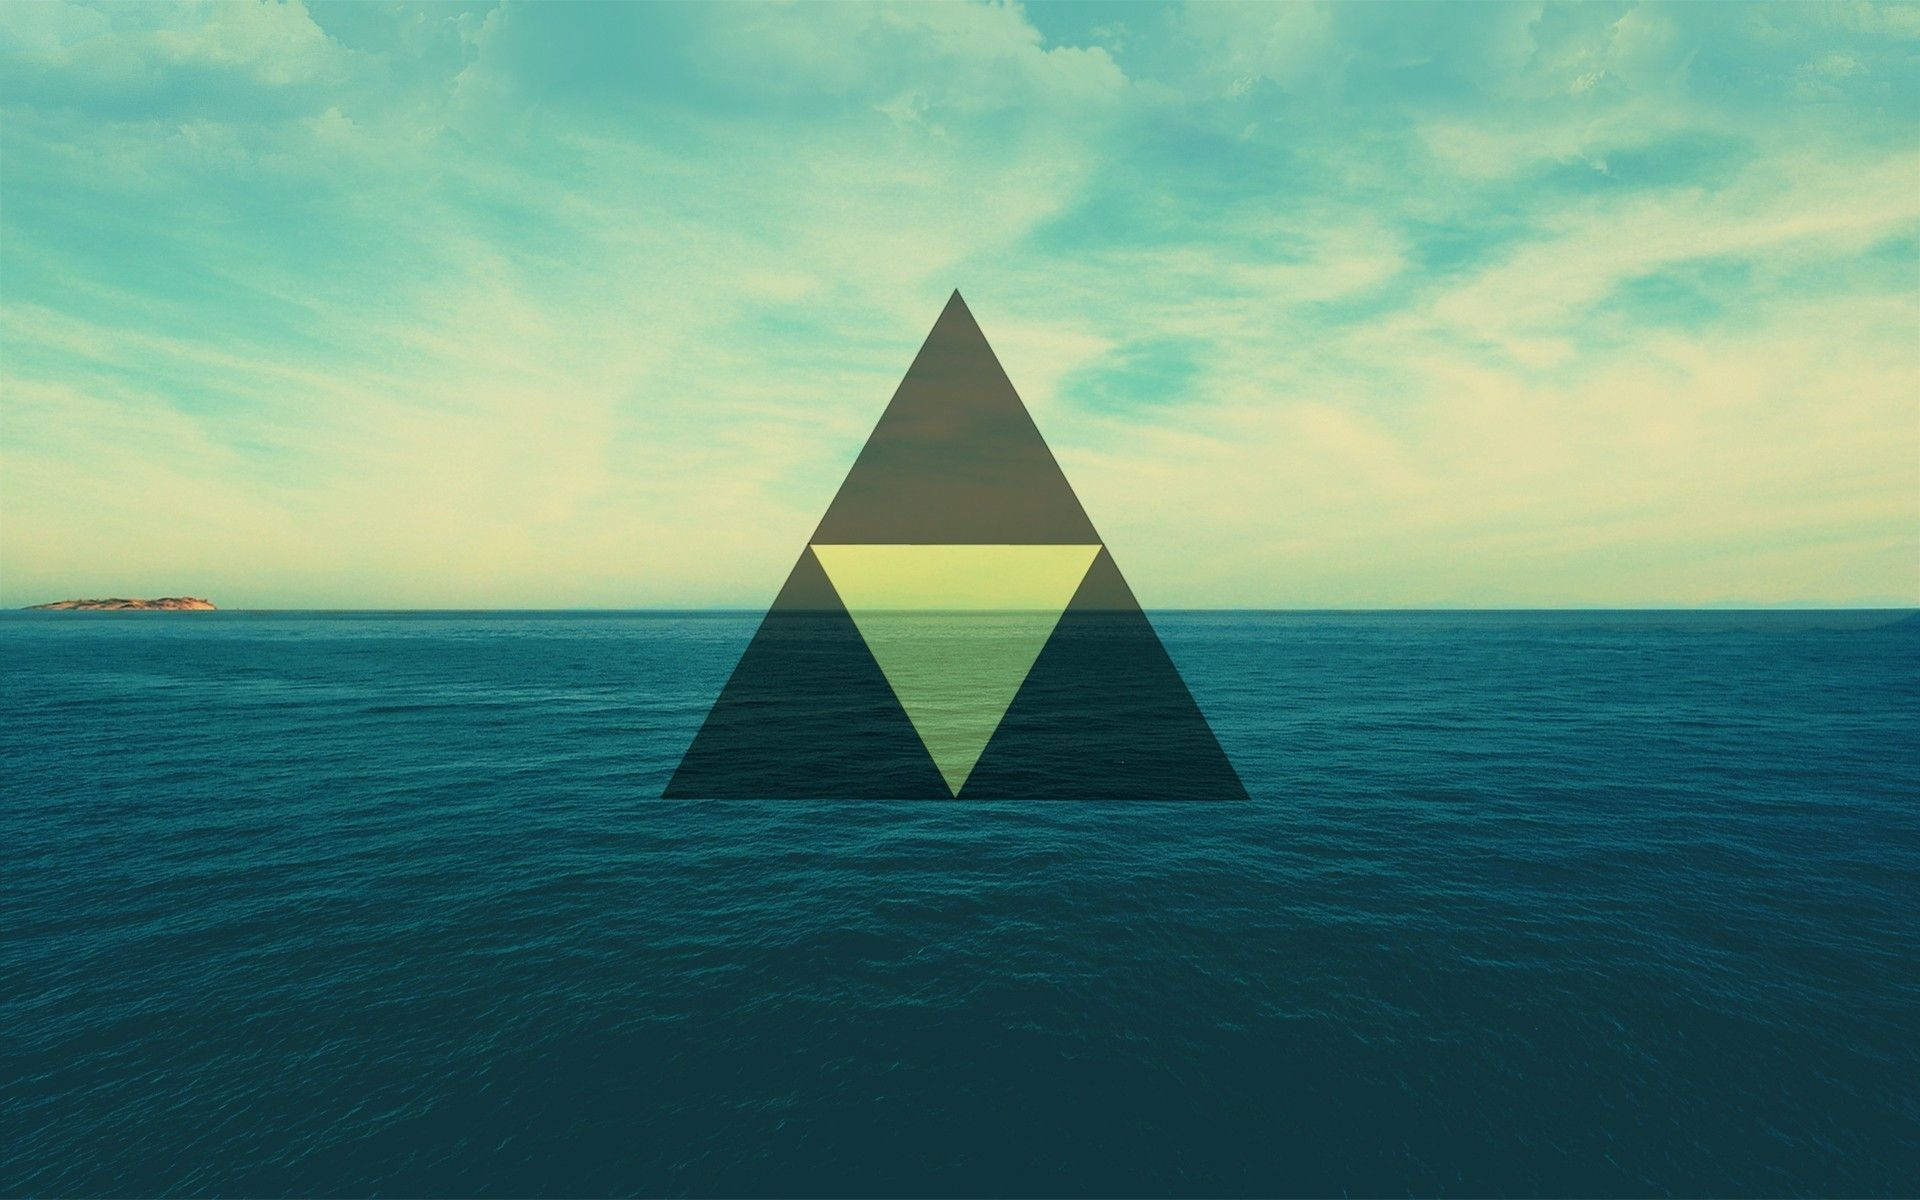 Hd wallpaper hipster - Photography Triangle Wallpapers Hd Wallpaper Hipster Wallpaper Wallpapers Pinterest Triangles Hipster Wallpaper And Hd Wallpaper